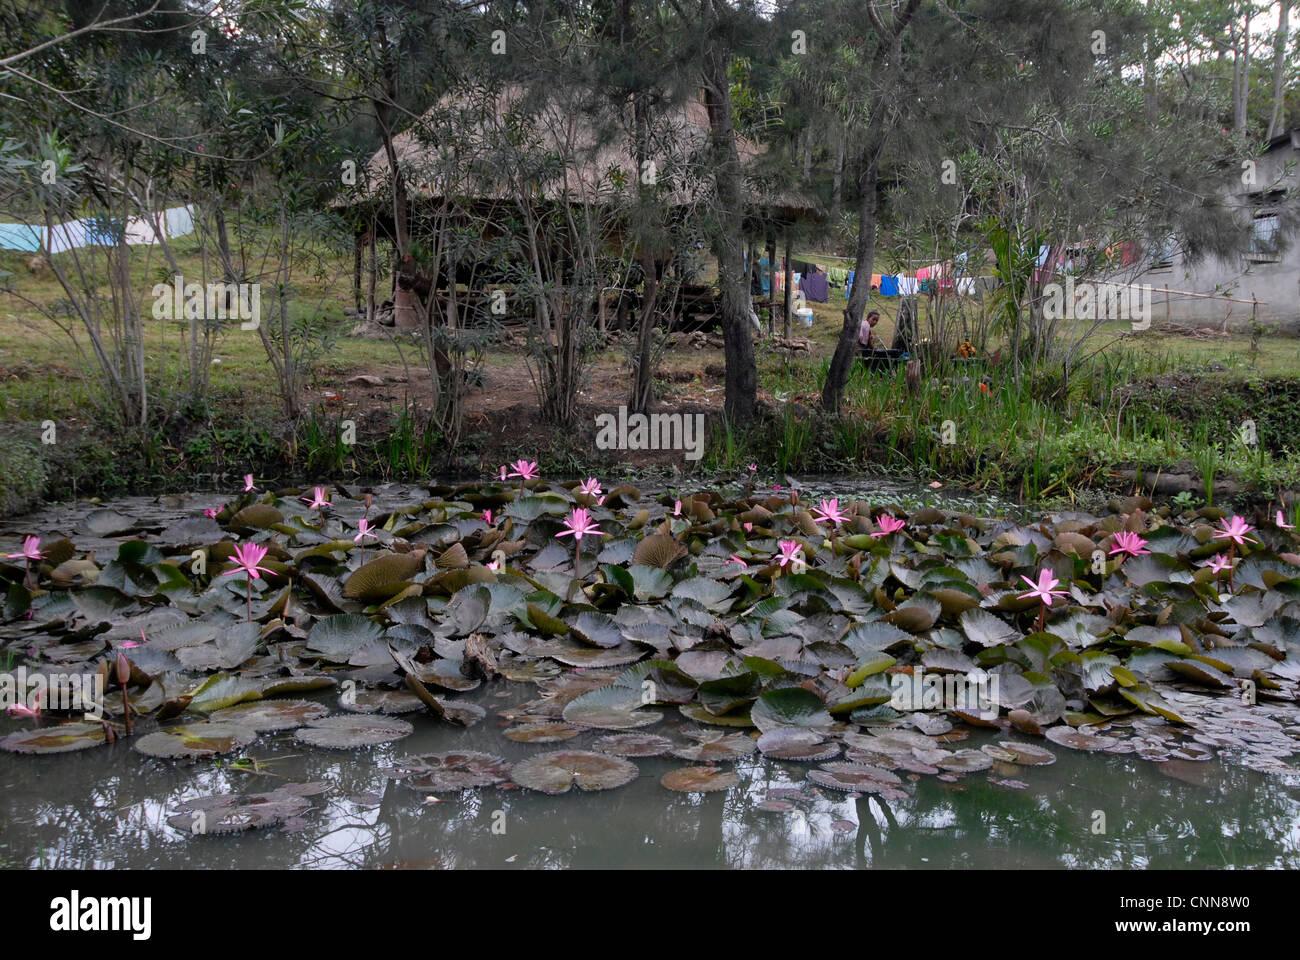 Water Lilies growing in the Ossu area of Timor Leste Stock Photo